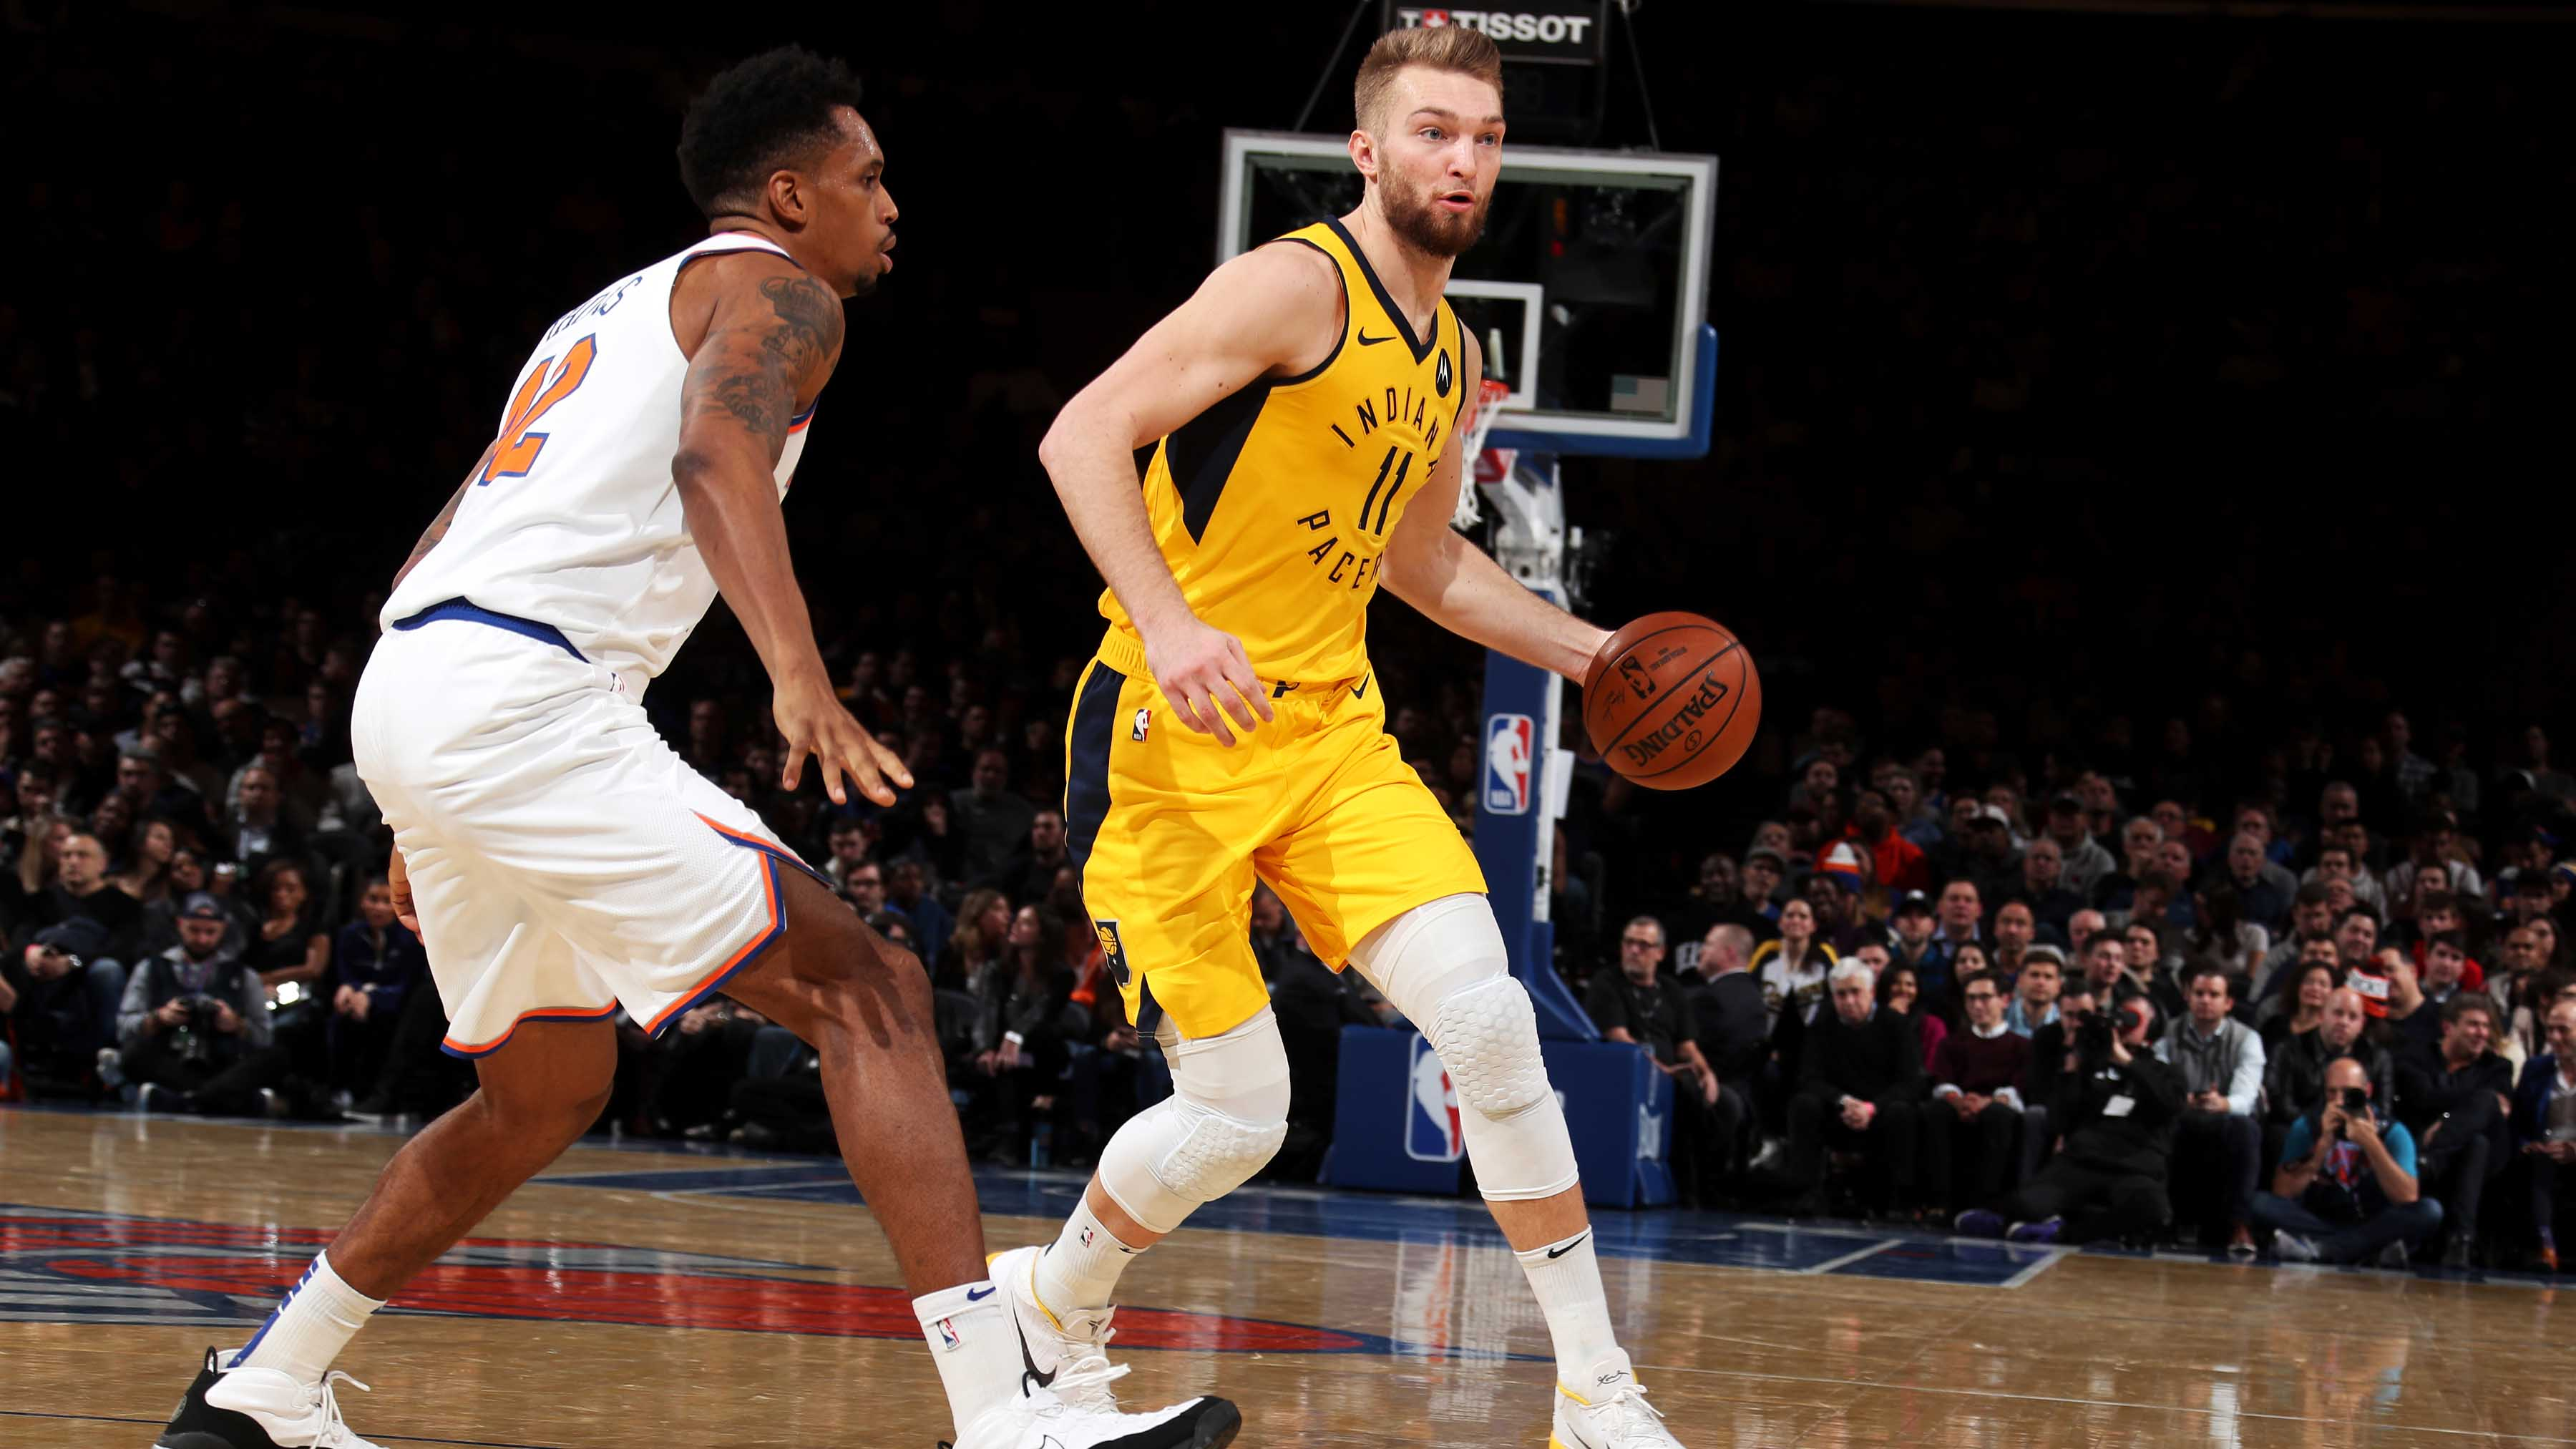 GAME RECAP: Pacers 121, Knicks 106